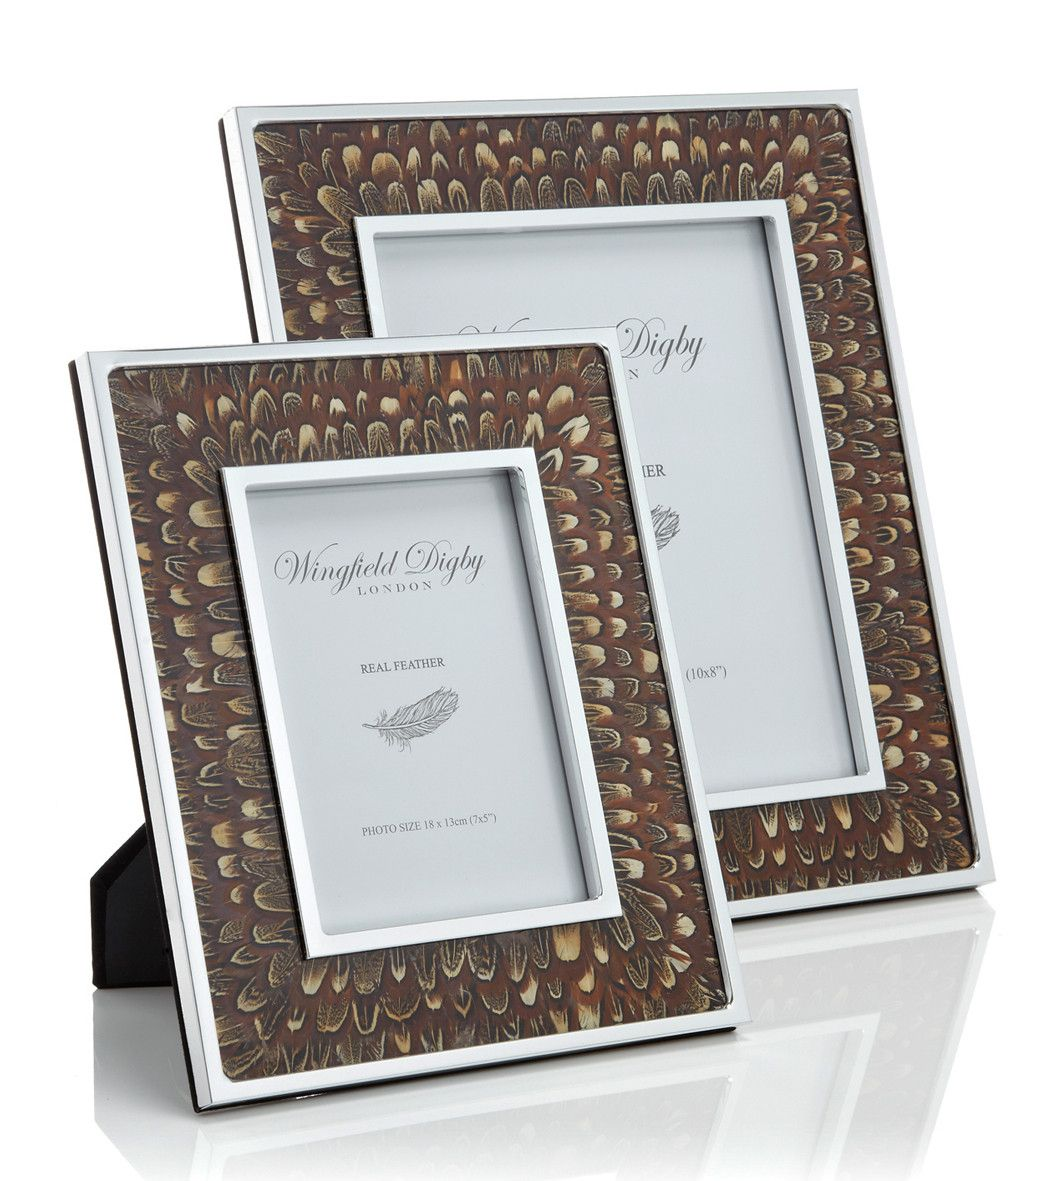 Cock pheasant feather glass photo frame glass photo frames cock pheasant feather glass photo frame wingfield digby jeuxipadfo Image collections